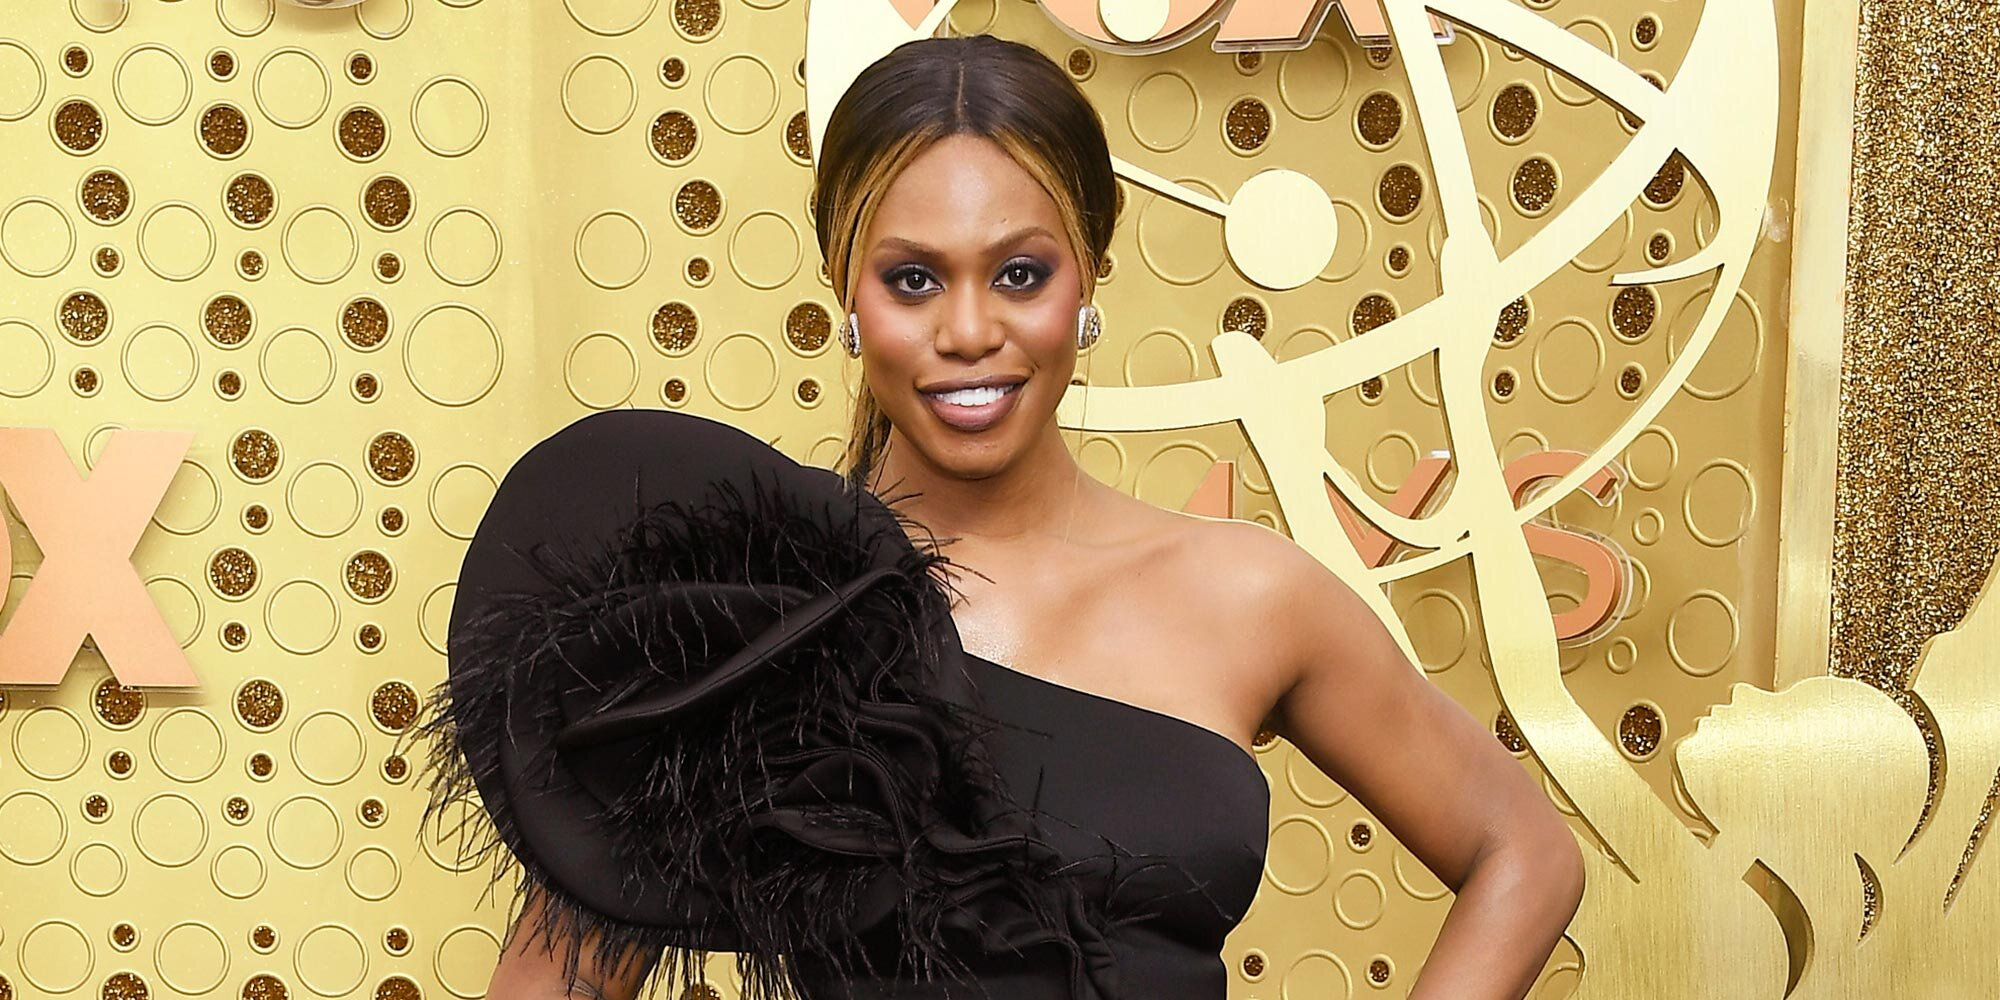 Laverne Cox to replace Giuliana Rancic as E! red carpet host: 'I can't wait to get started'